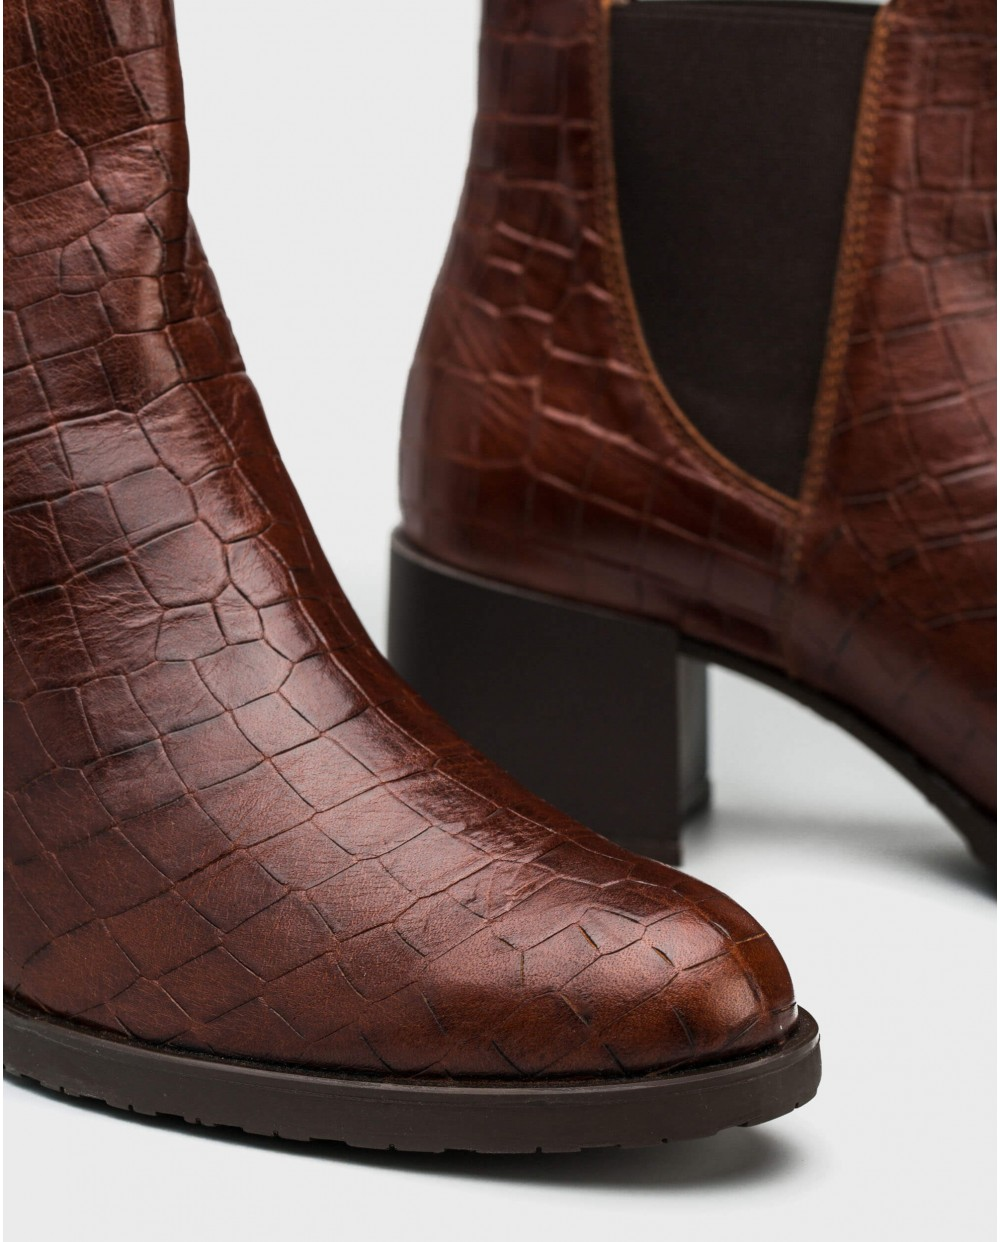 Wonders-Ankle Boots-Mock-croc ankle boot